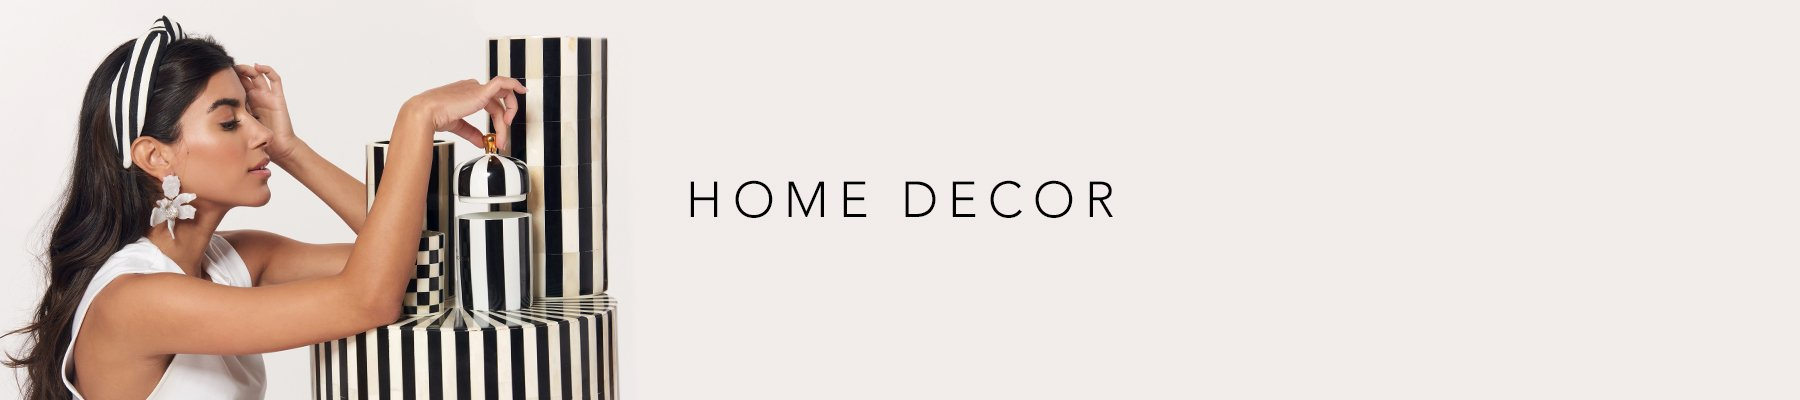 All Home Decor